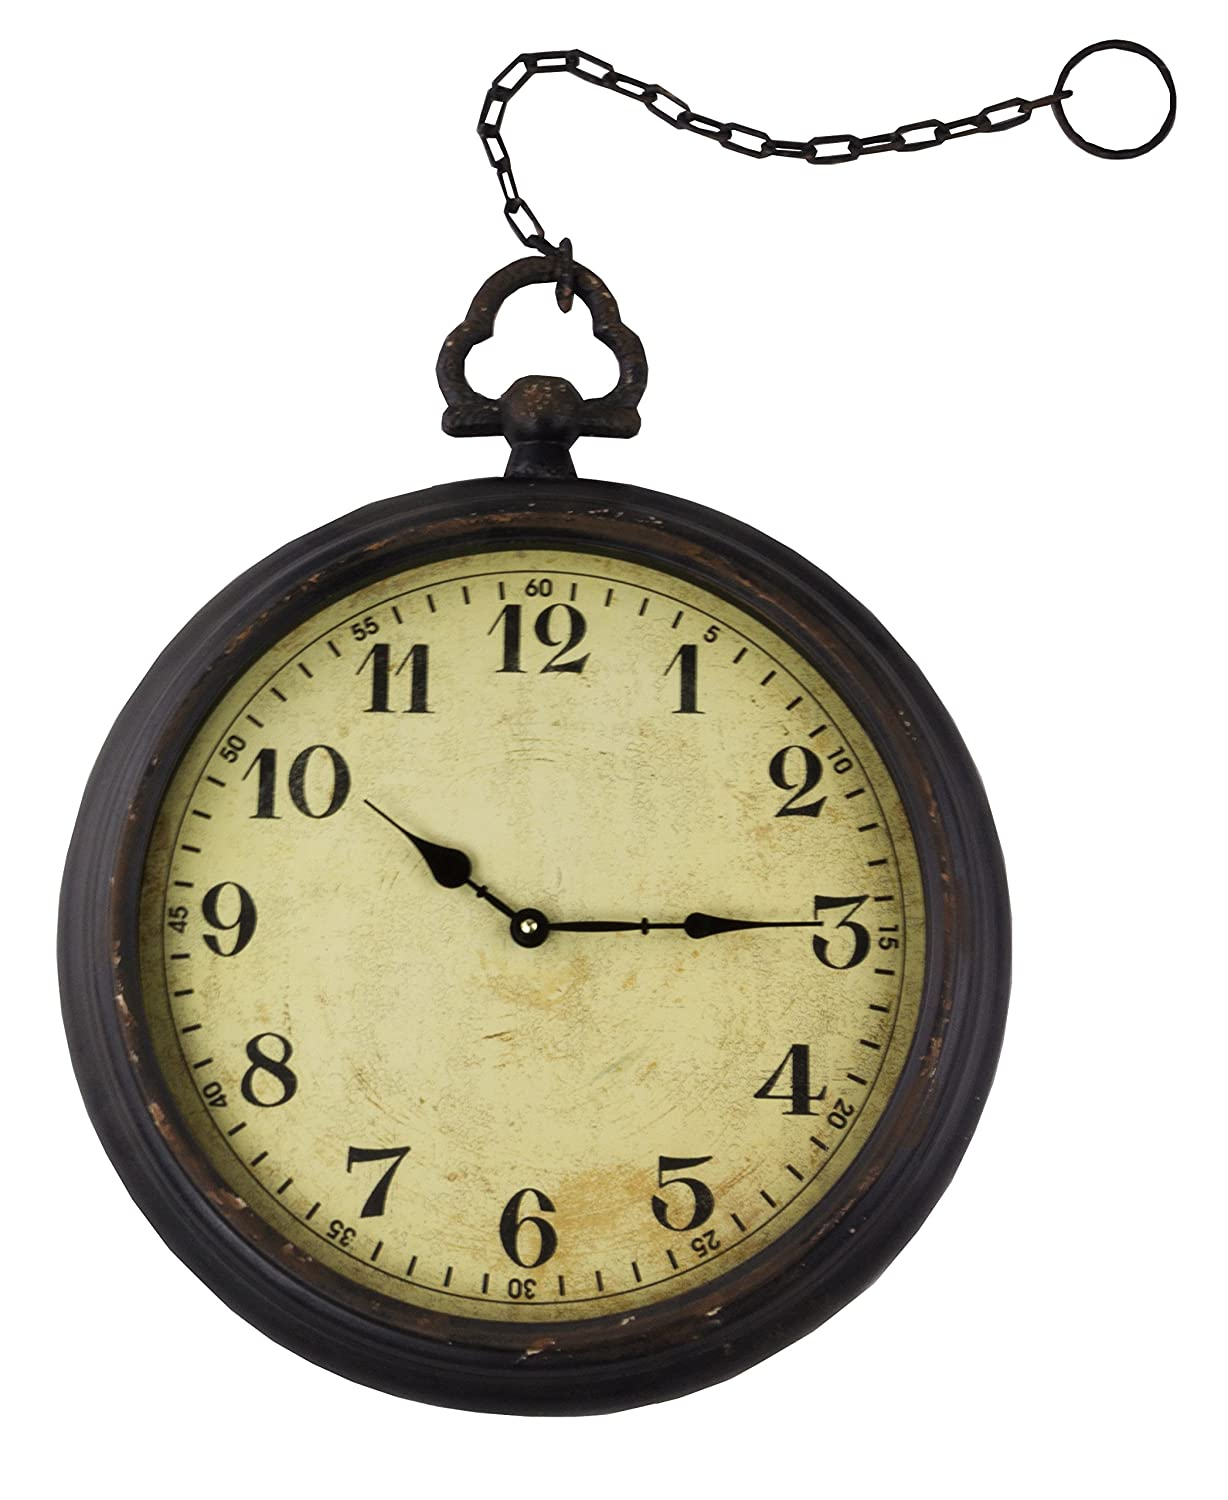 Amazon.com: Vintage Pocket Watch Inspired Wall Clock With Chain ...